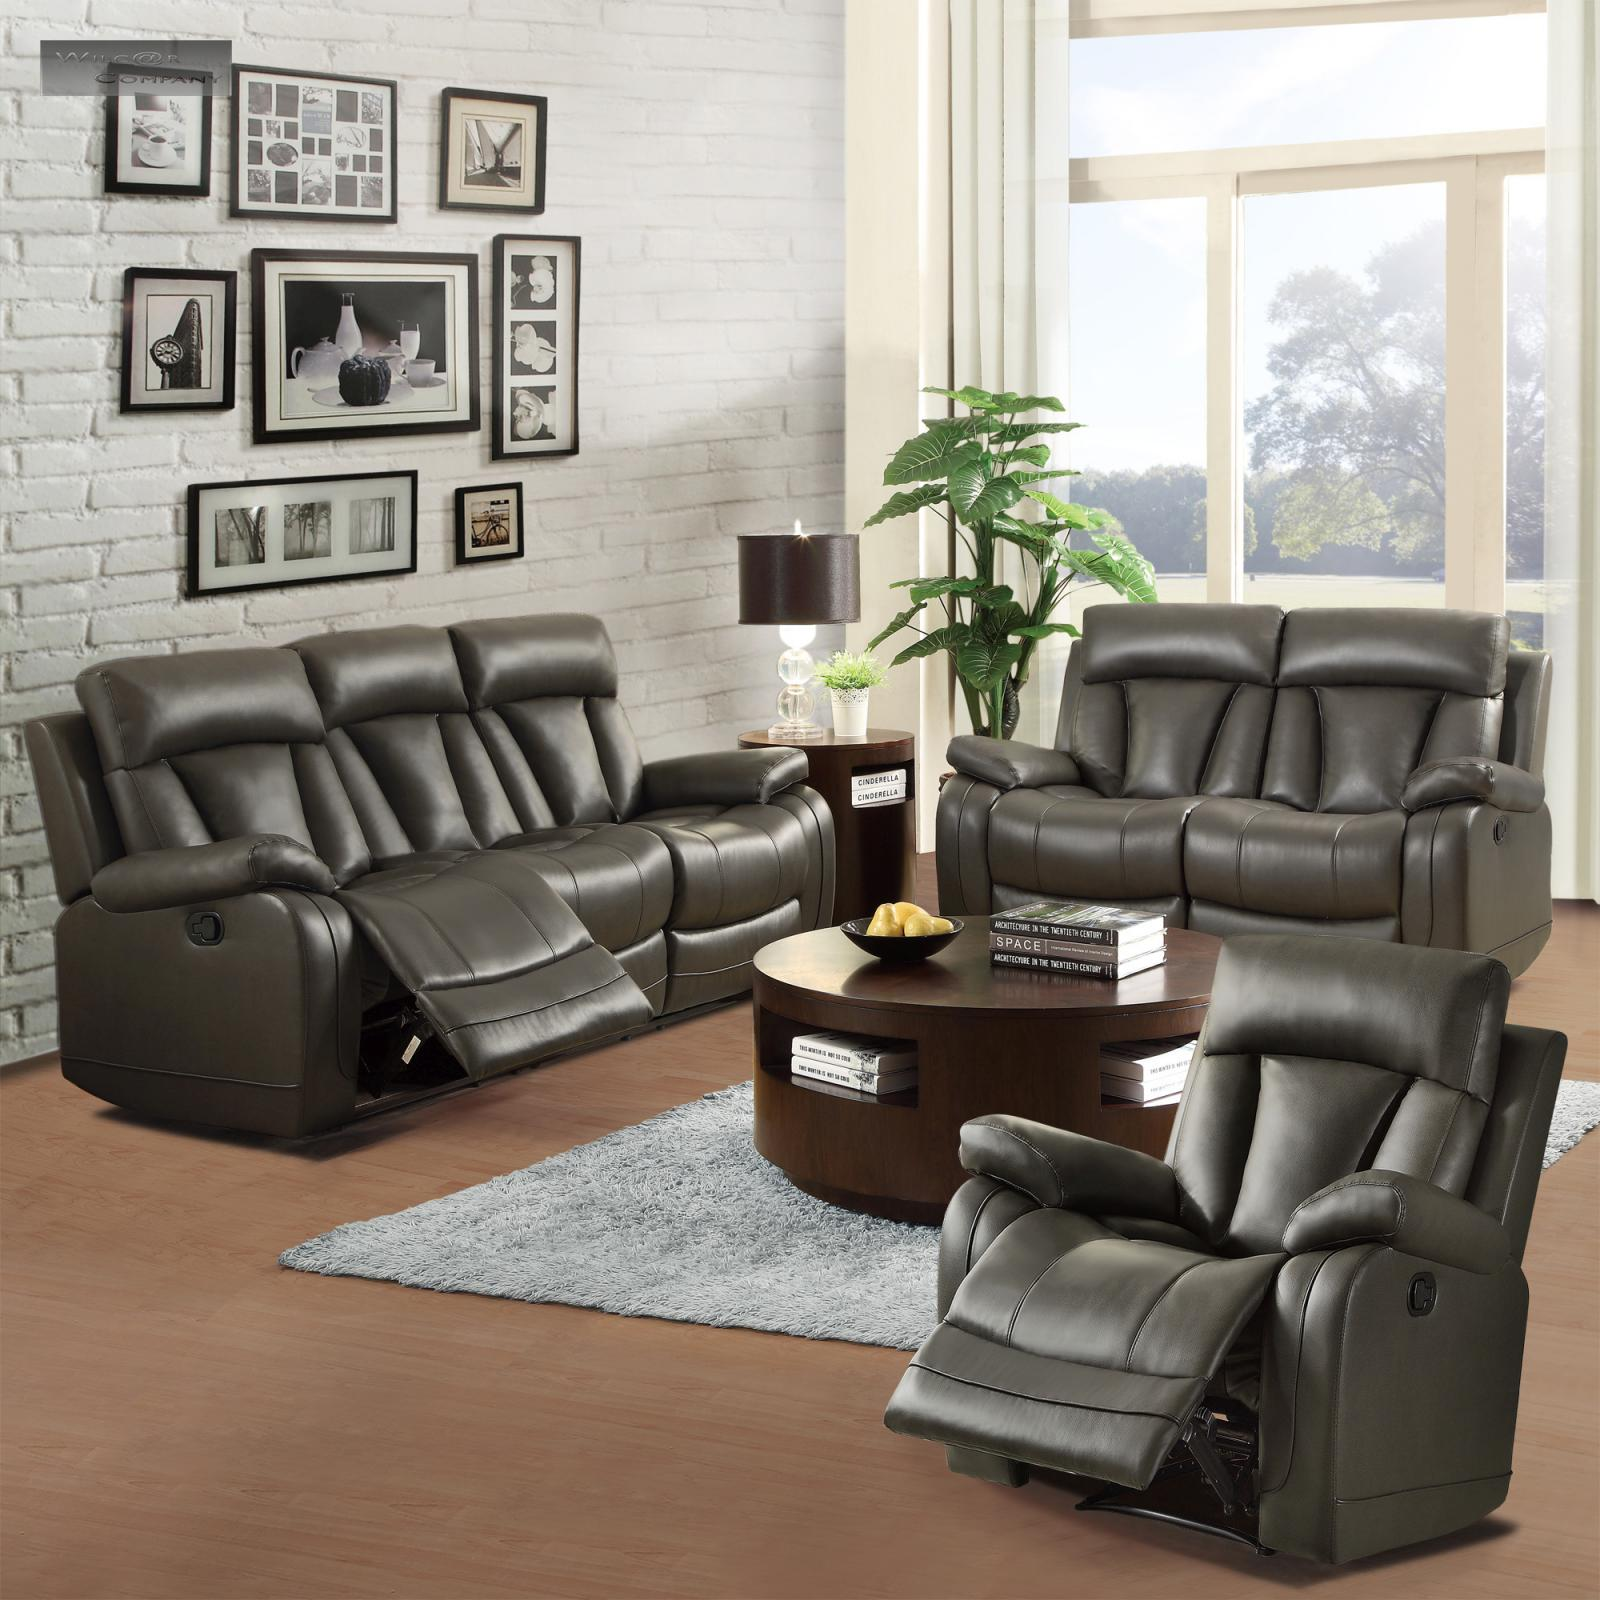 New Black Leather Recliner Lazy Chair Furniture Living